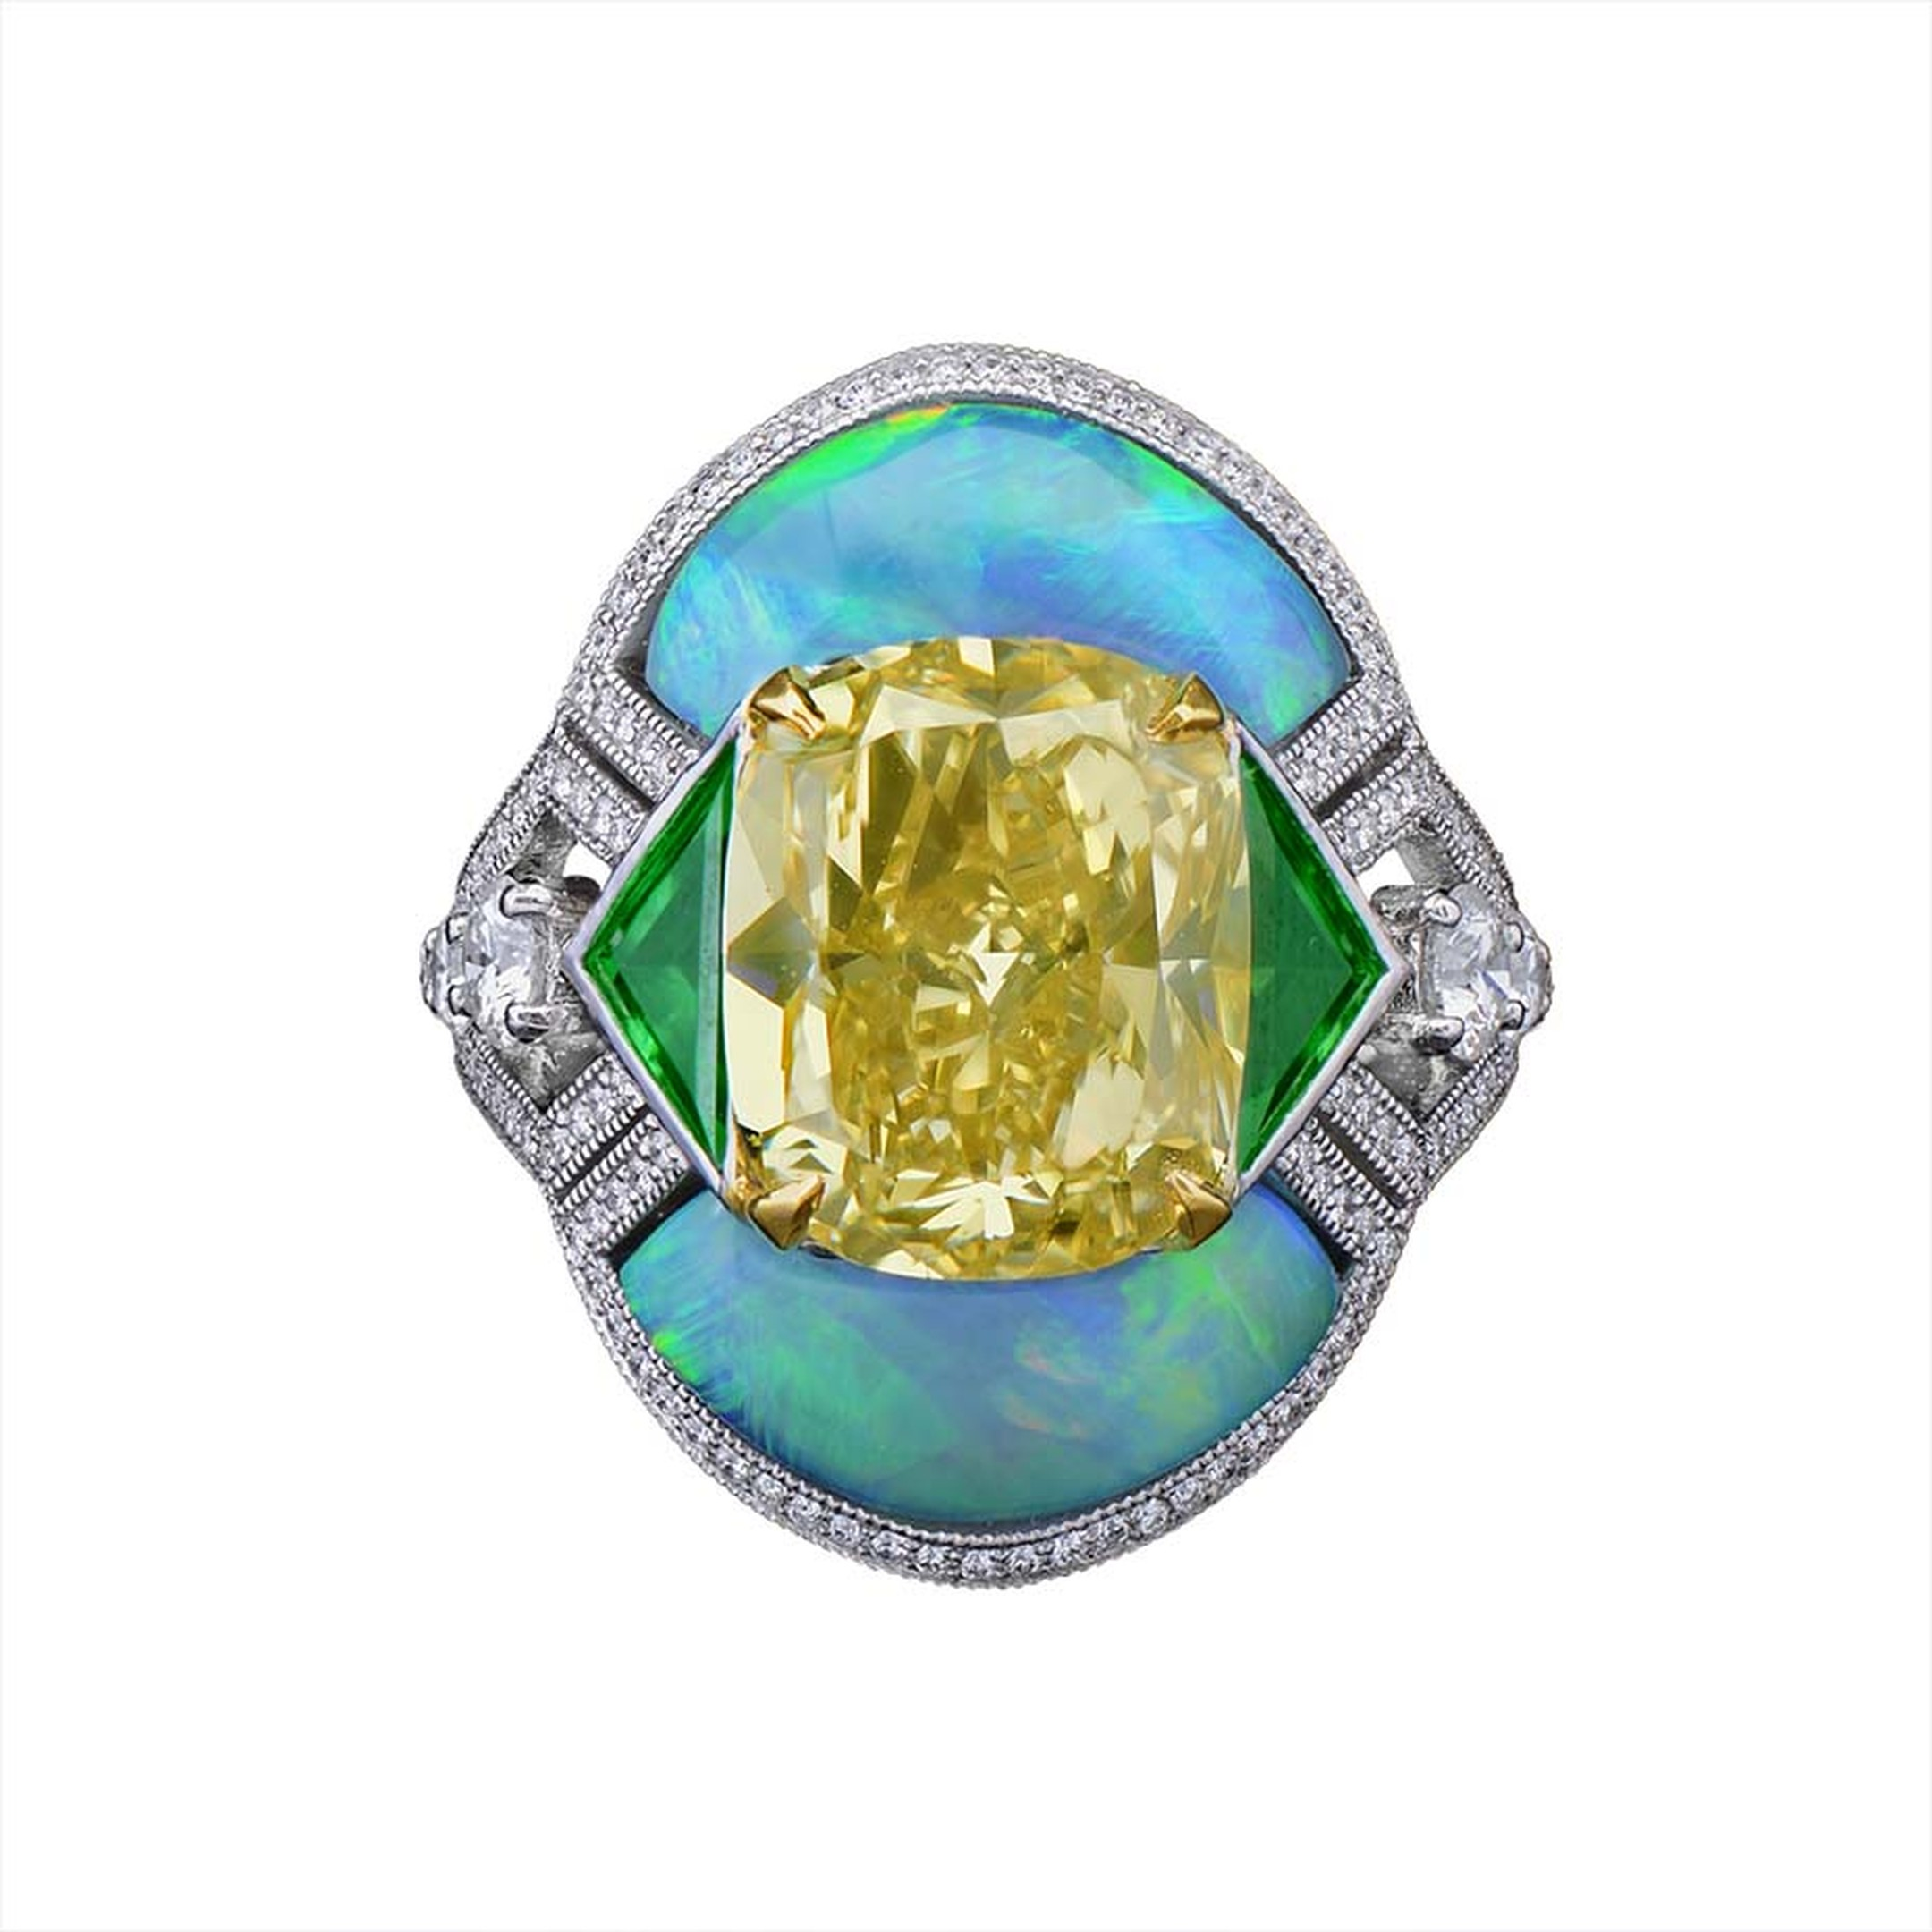 Morelle Davidson's Art Deco ring features a fancy intense yellow diamond surrounded by green triangular-cut tsavorite garnets and shimmering opals.